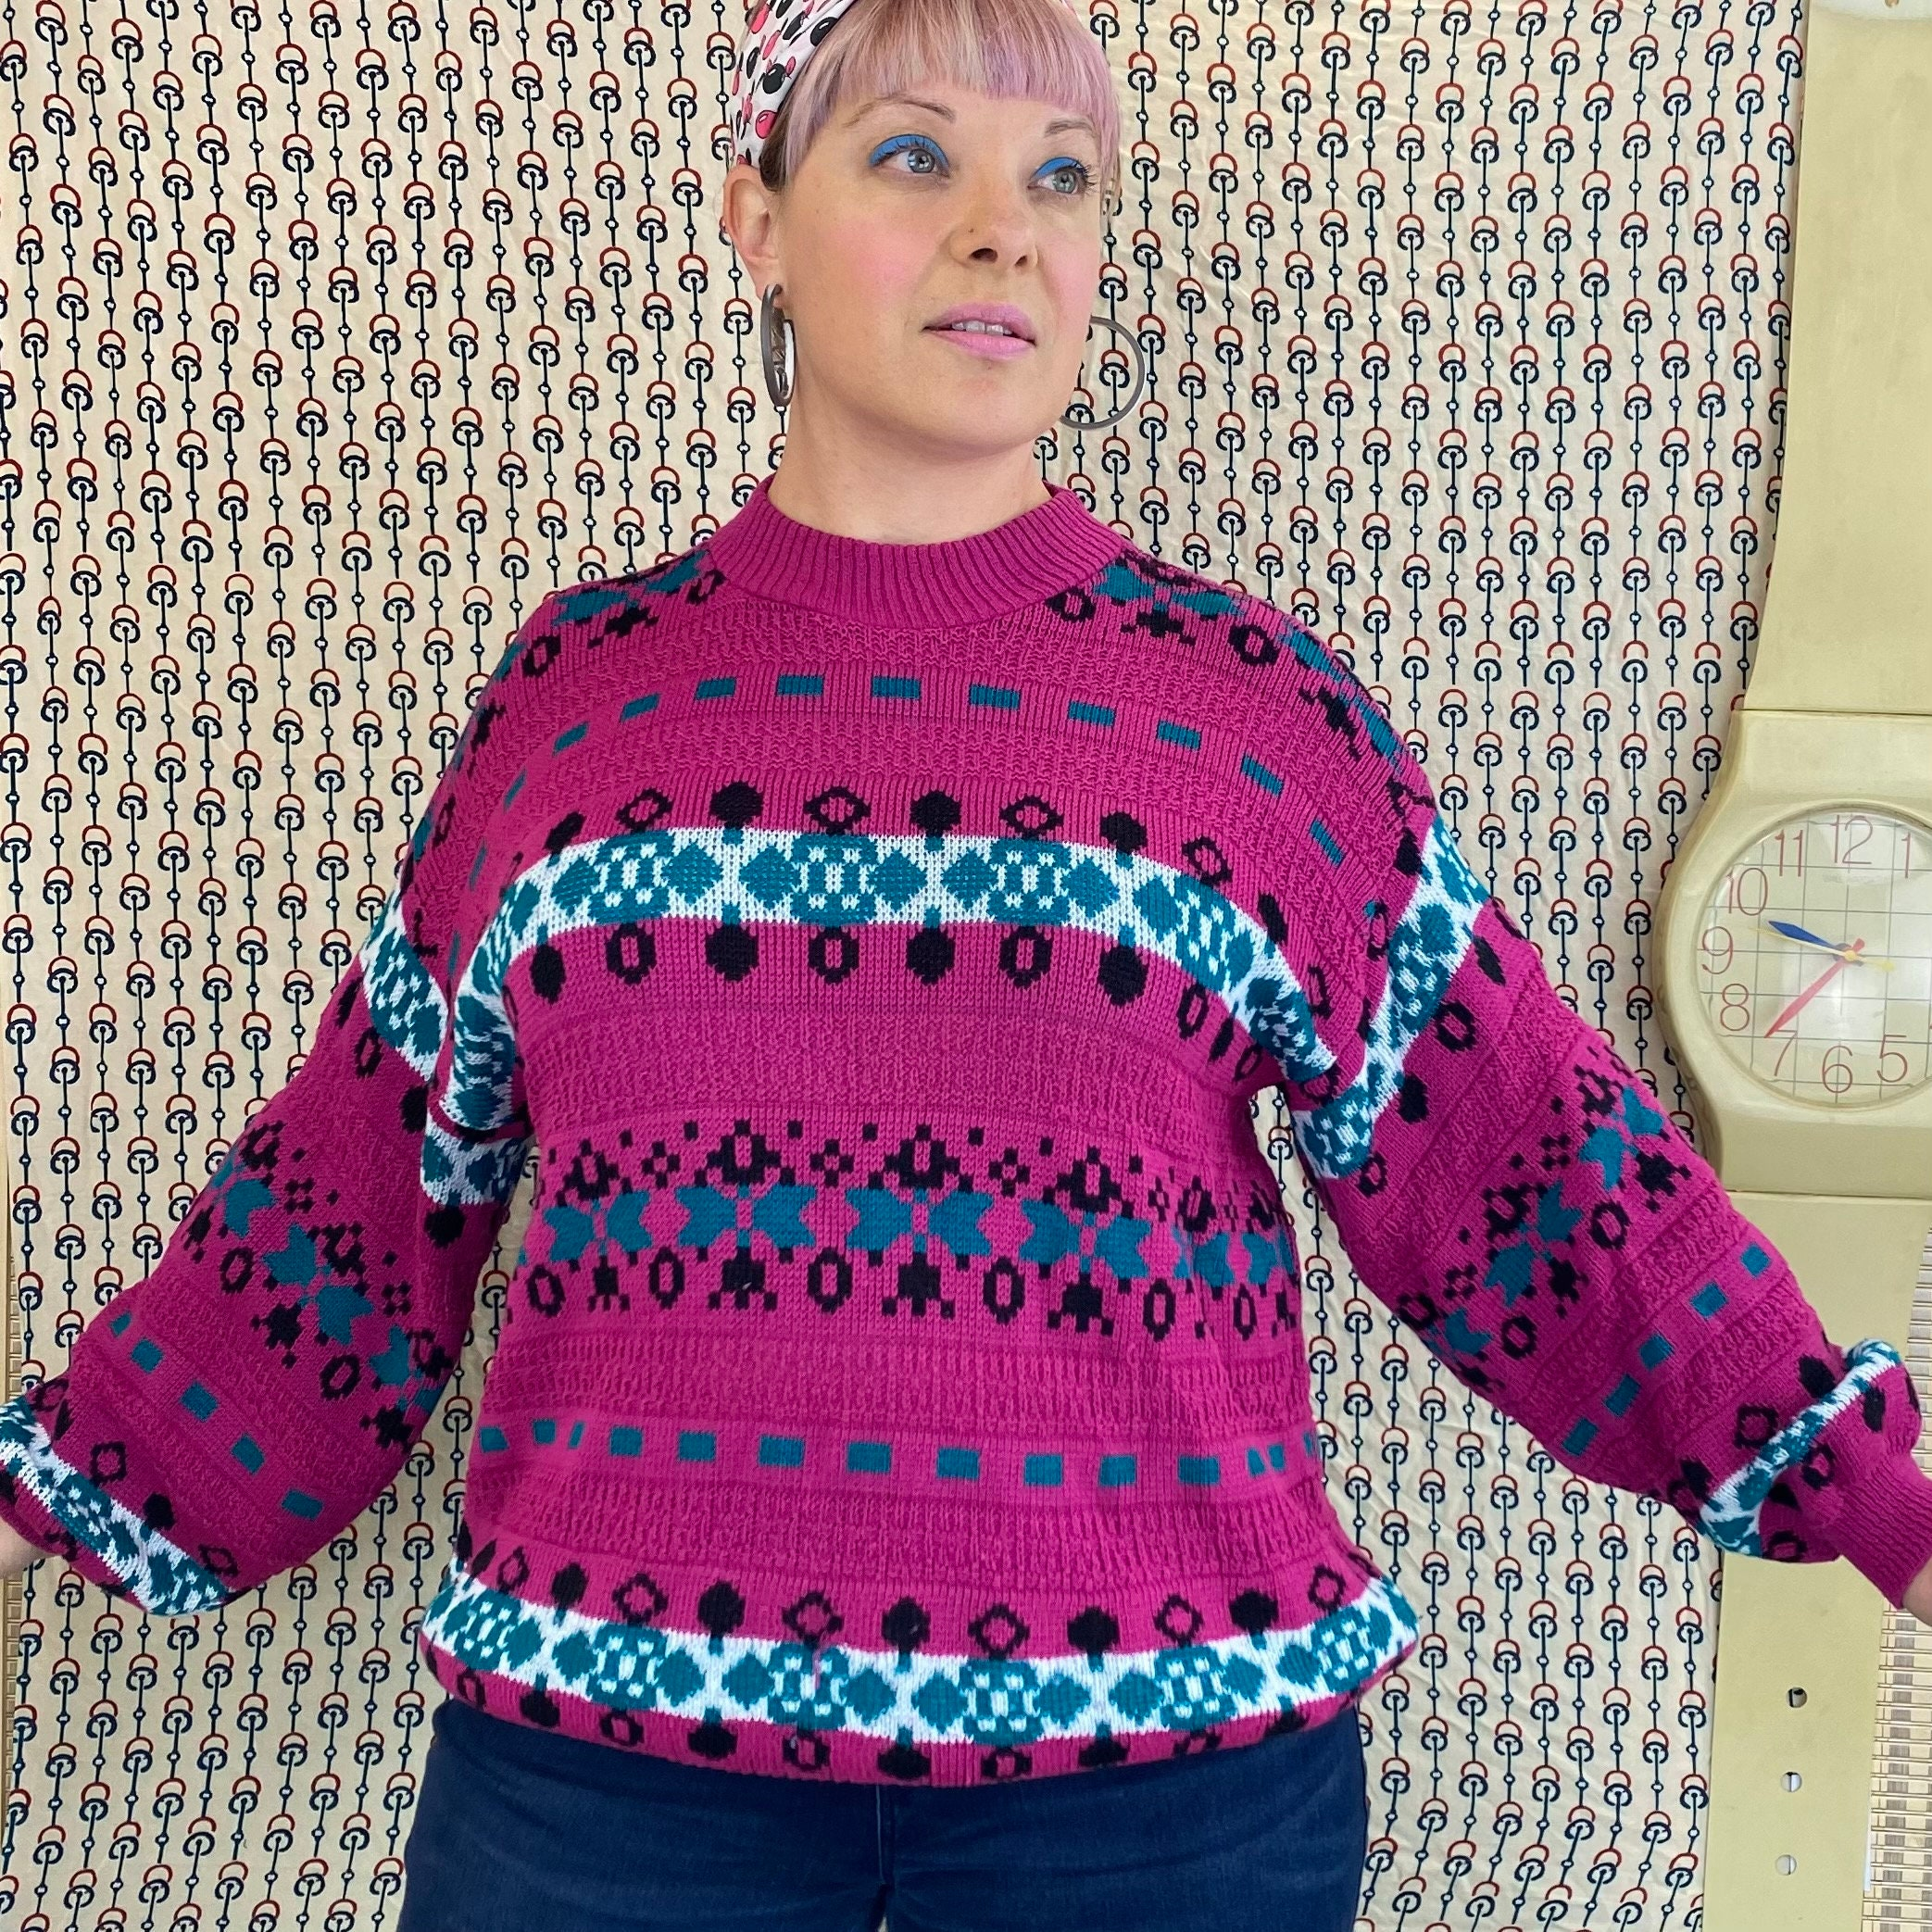 80s Sweatshirts, Sweaters, Vests | Women 80S 90S Oversize Knit Sweater, 1980S 1990S Magenta  Teal Granny Pullover, Boxy, Slouchy  Large - Extra Xl $27.00 AT vintagedancer.com